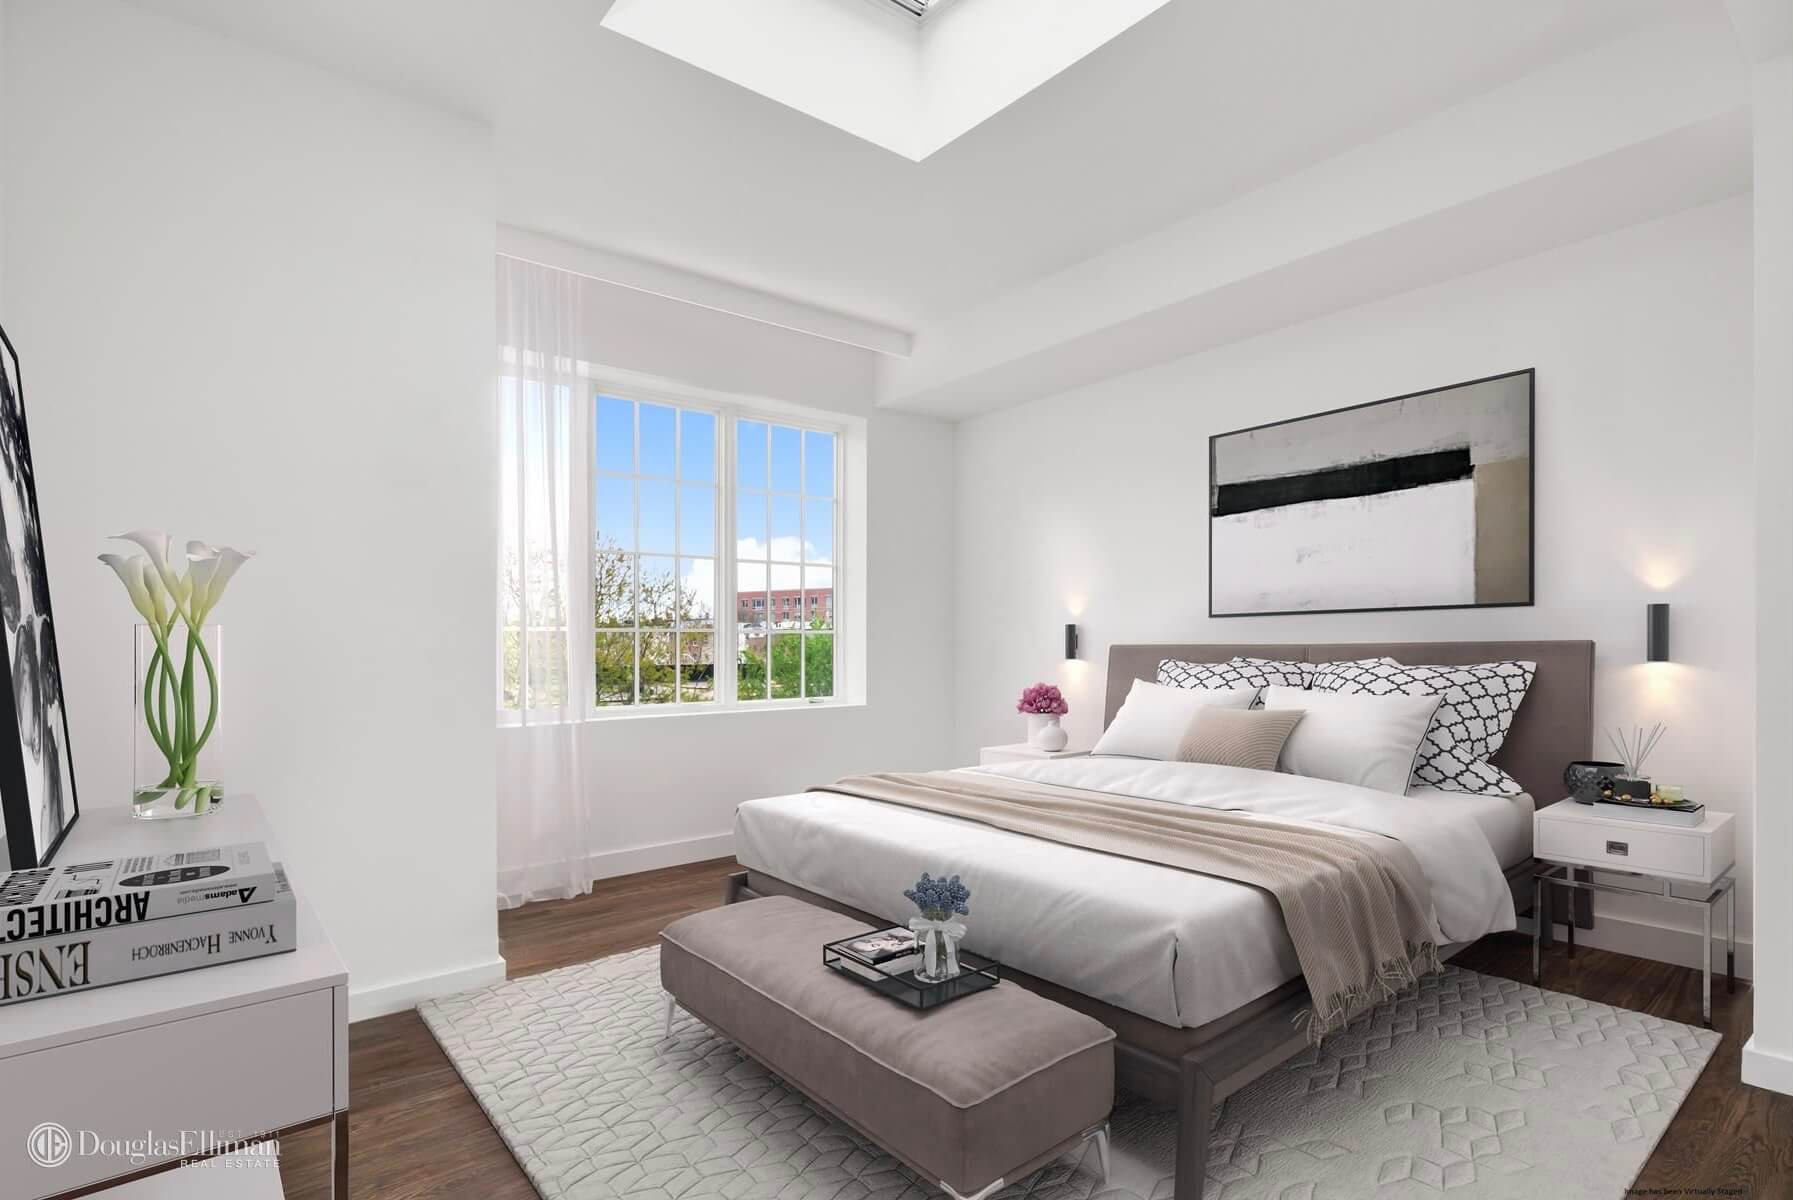 House for sale Brooklyn Prospect Heights 875 Pacific Street